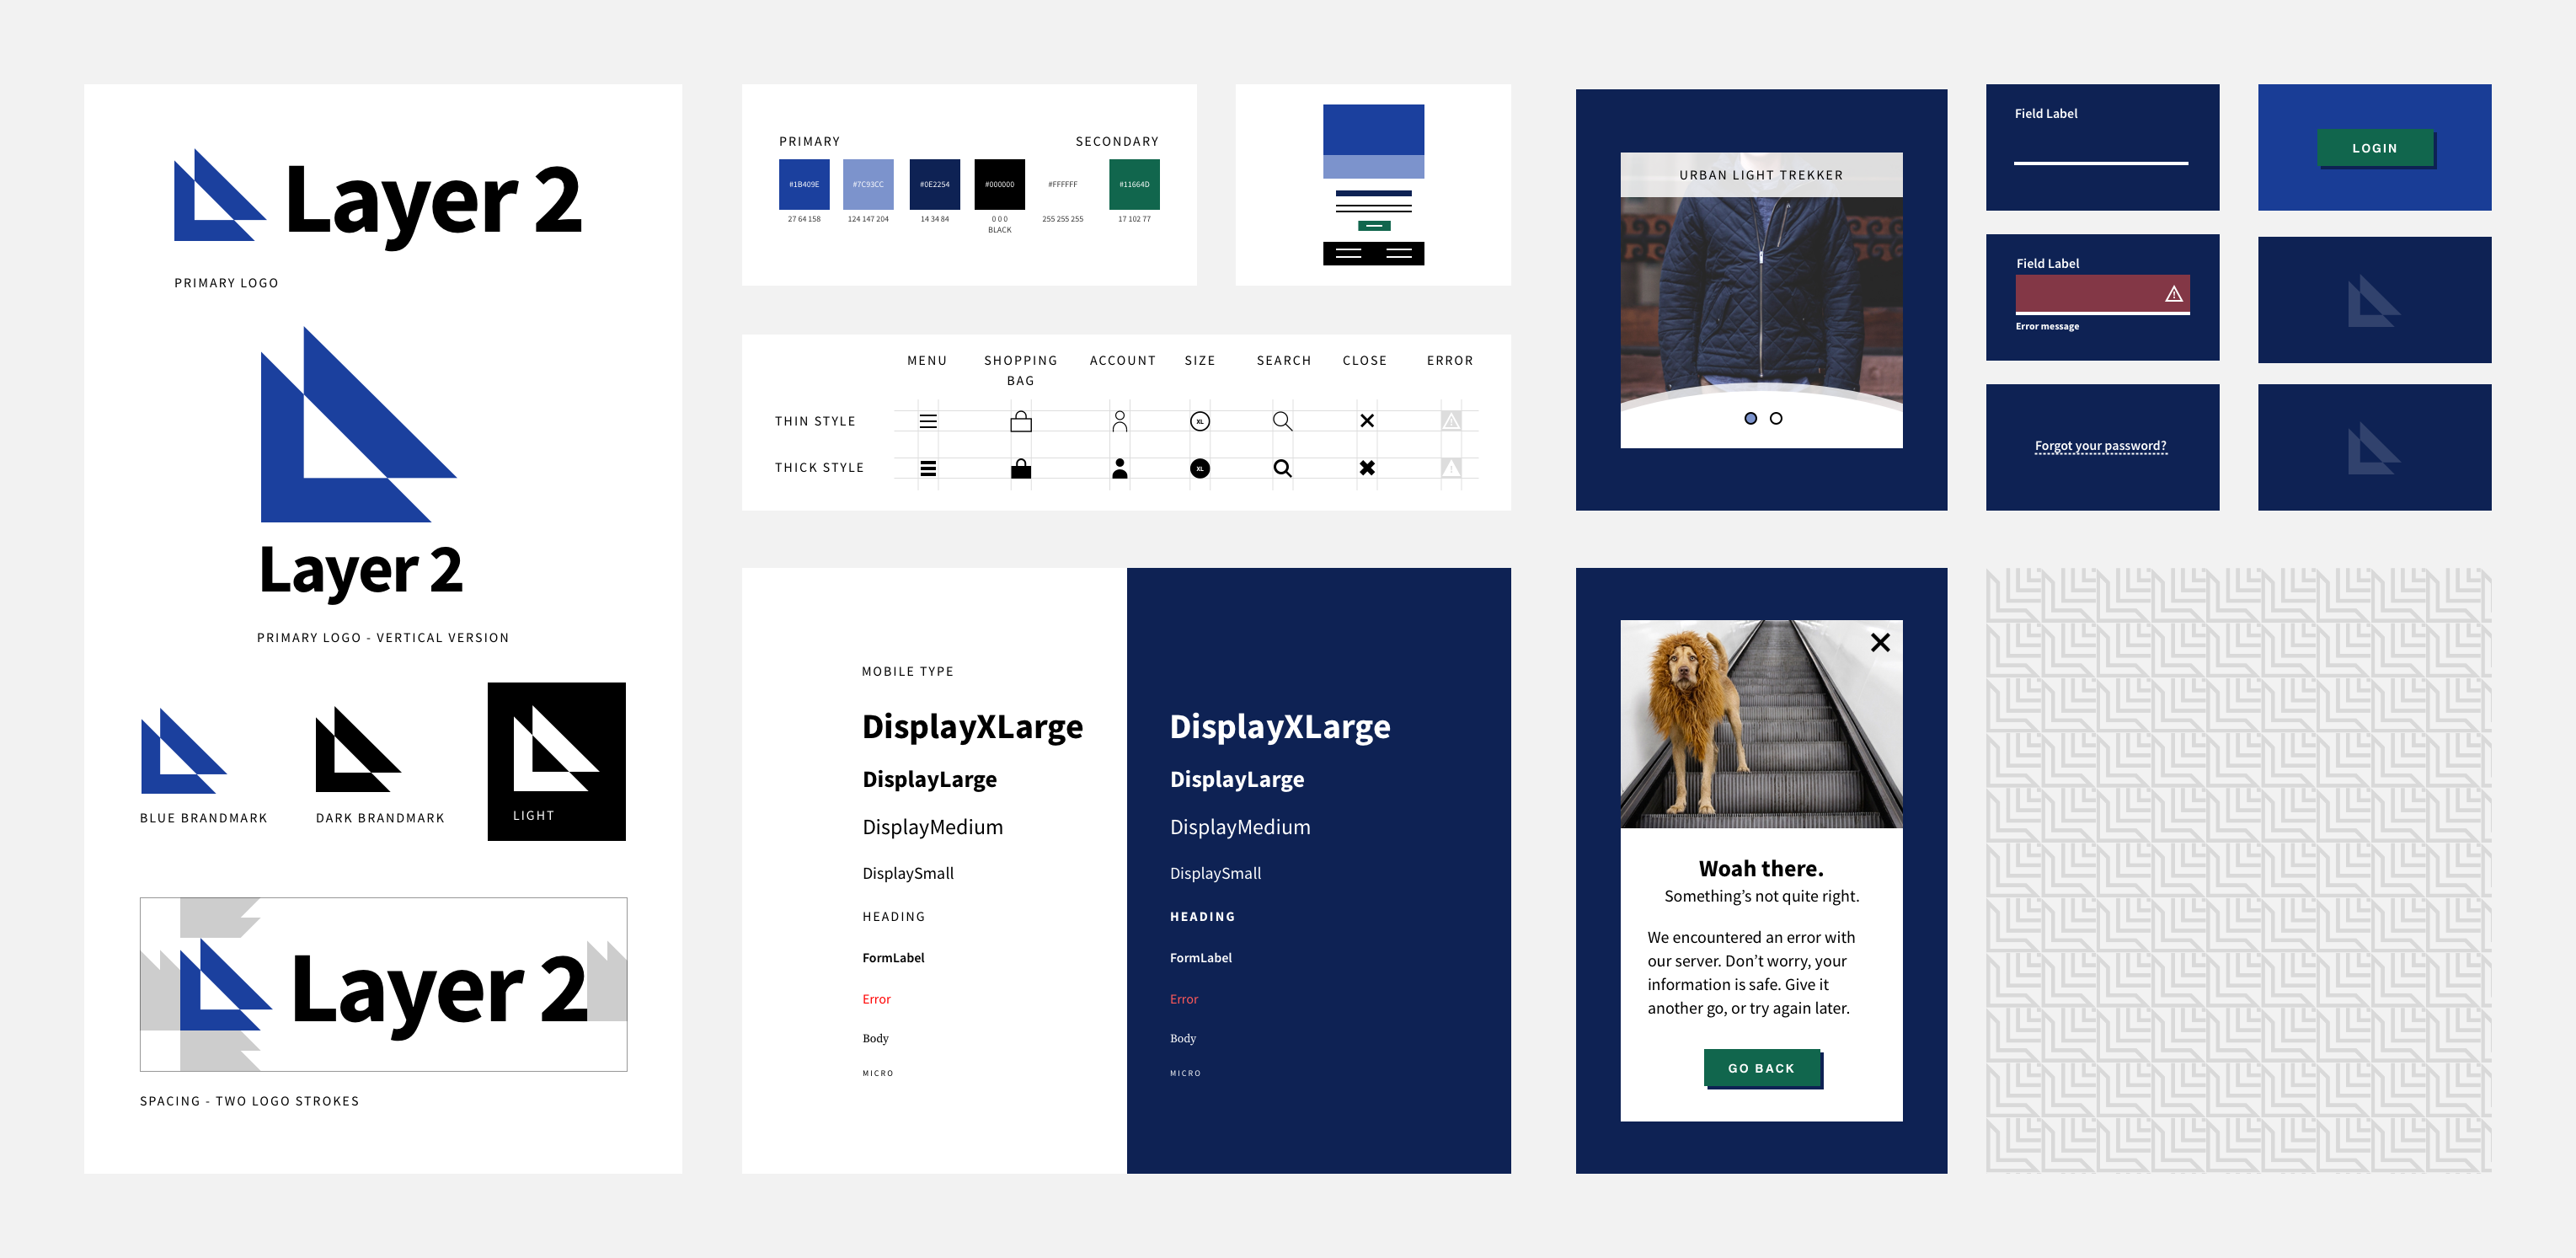 Styles and UI components for the Layer 2 brand.